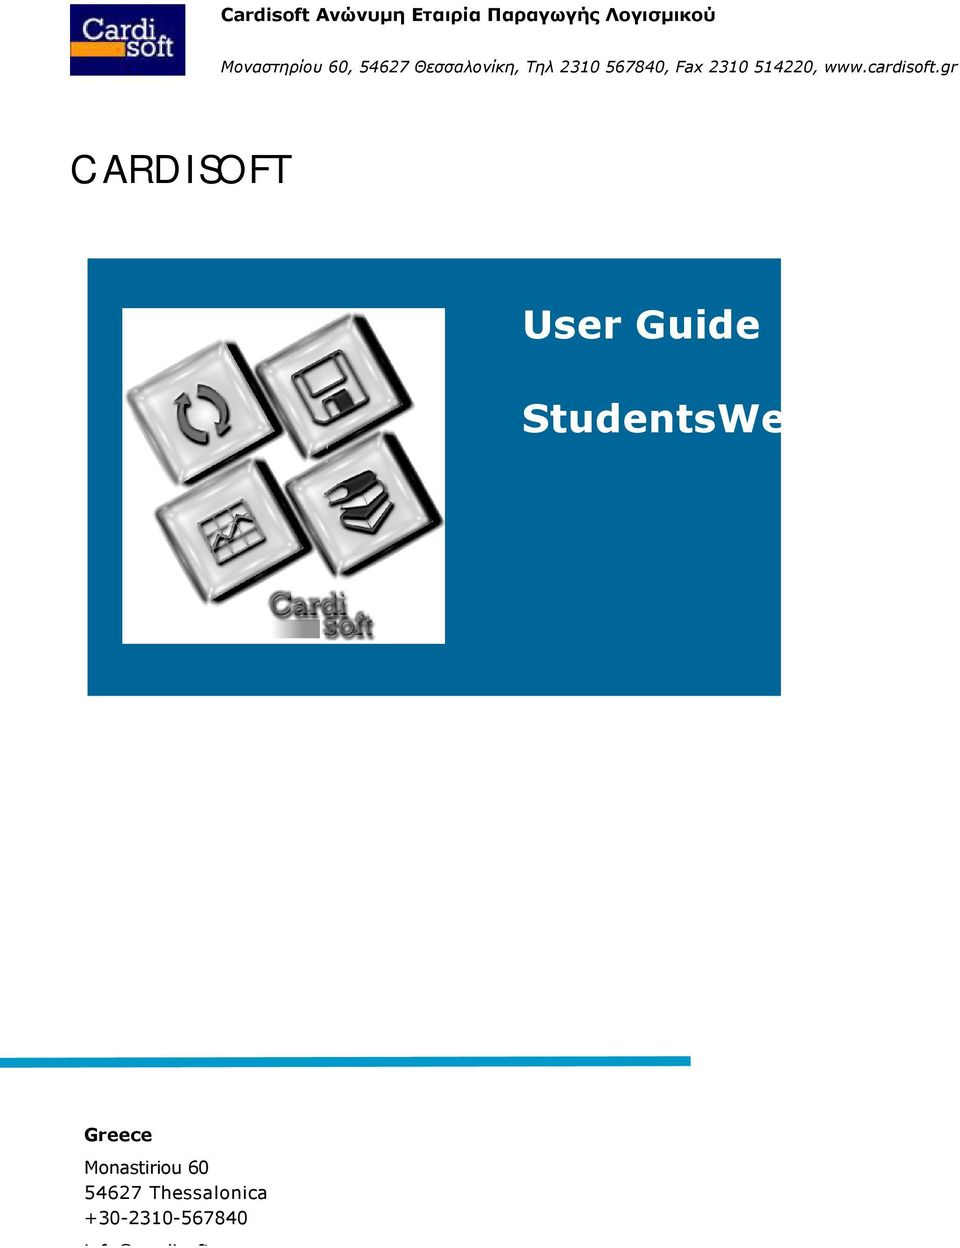 cardisoft.gr CARDISOFT User Guide StudentsWeb VERSION 1.